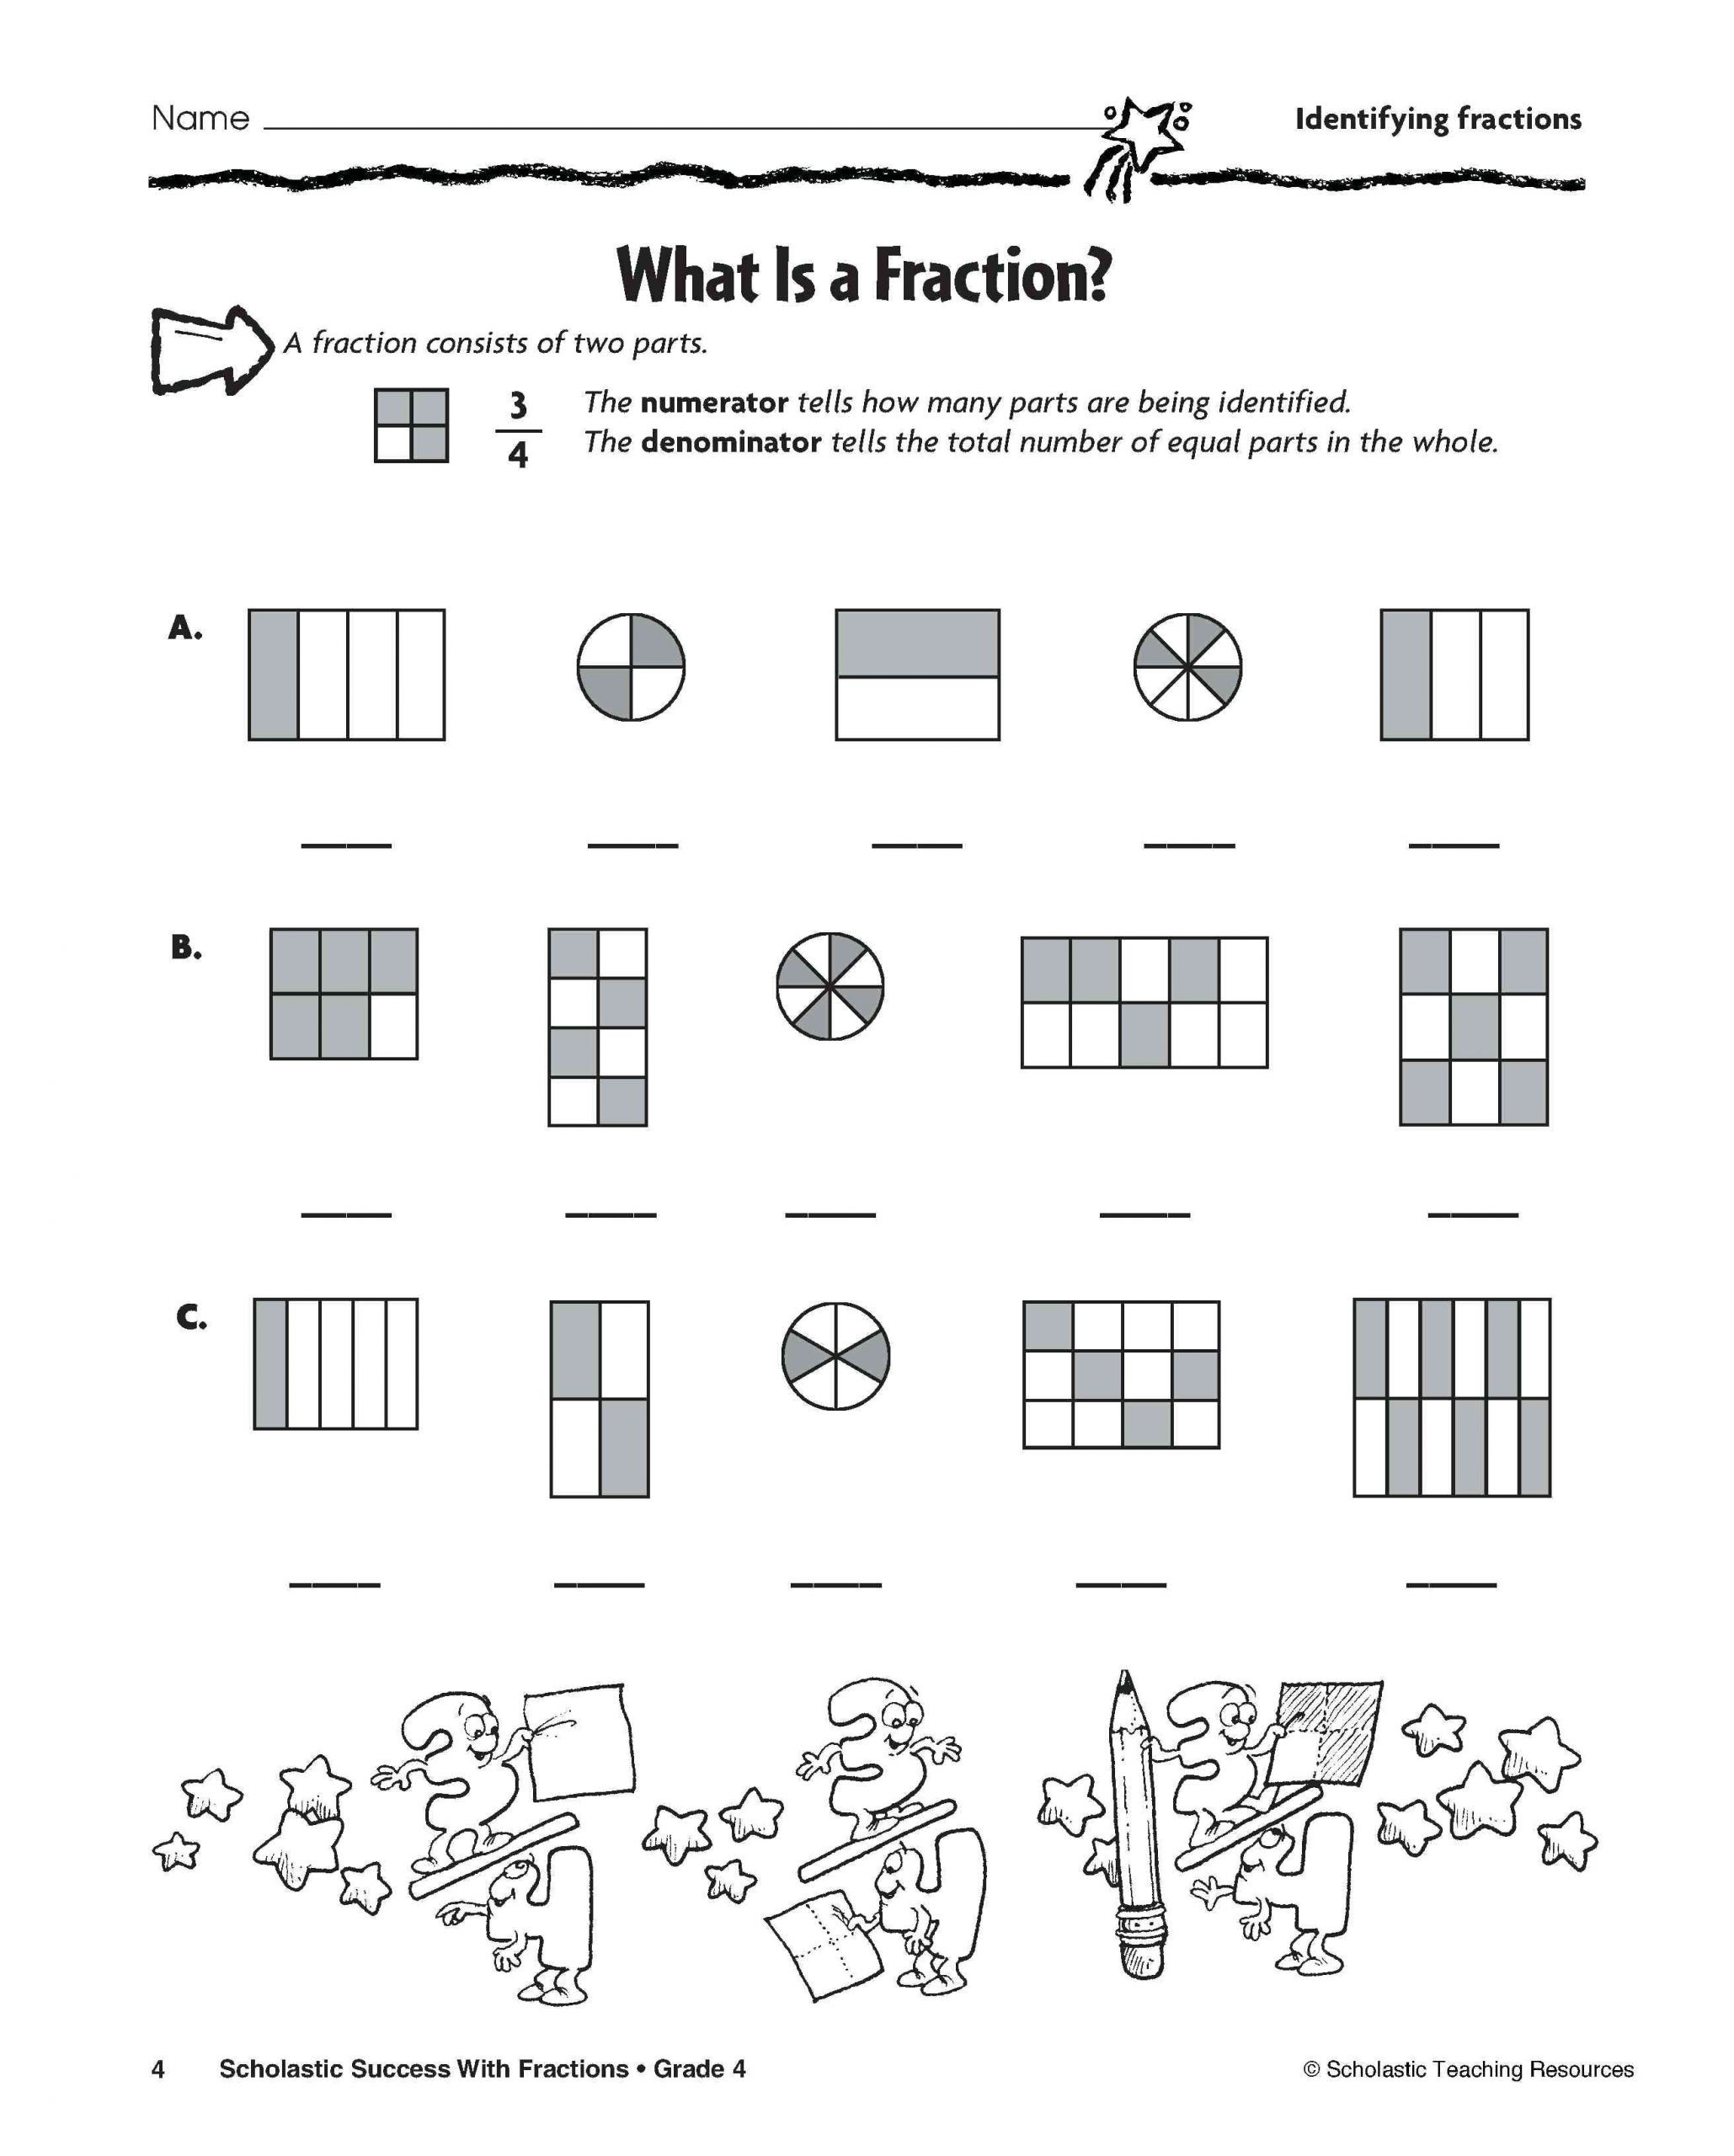 Free First Grade Fraction Worksheets 3 Free Math Worksheets Fourth Grade 4 Addition Adding